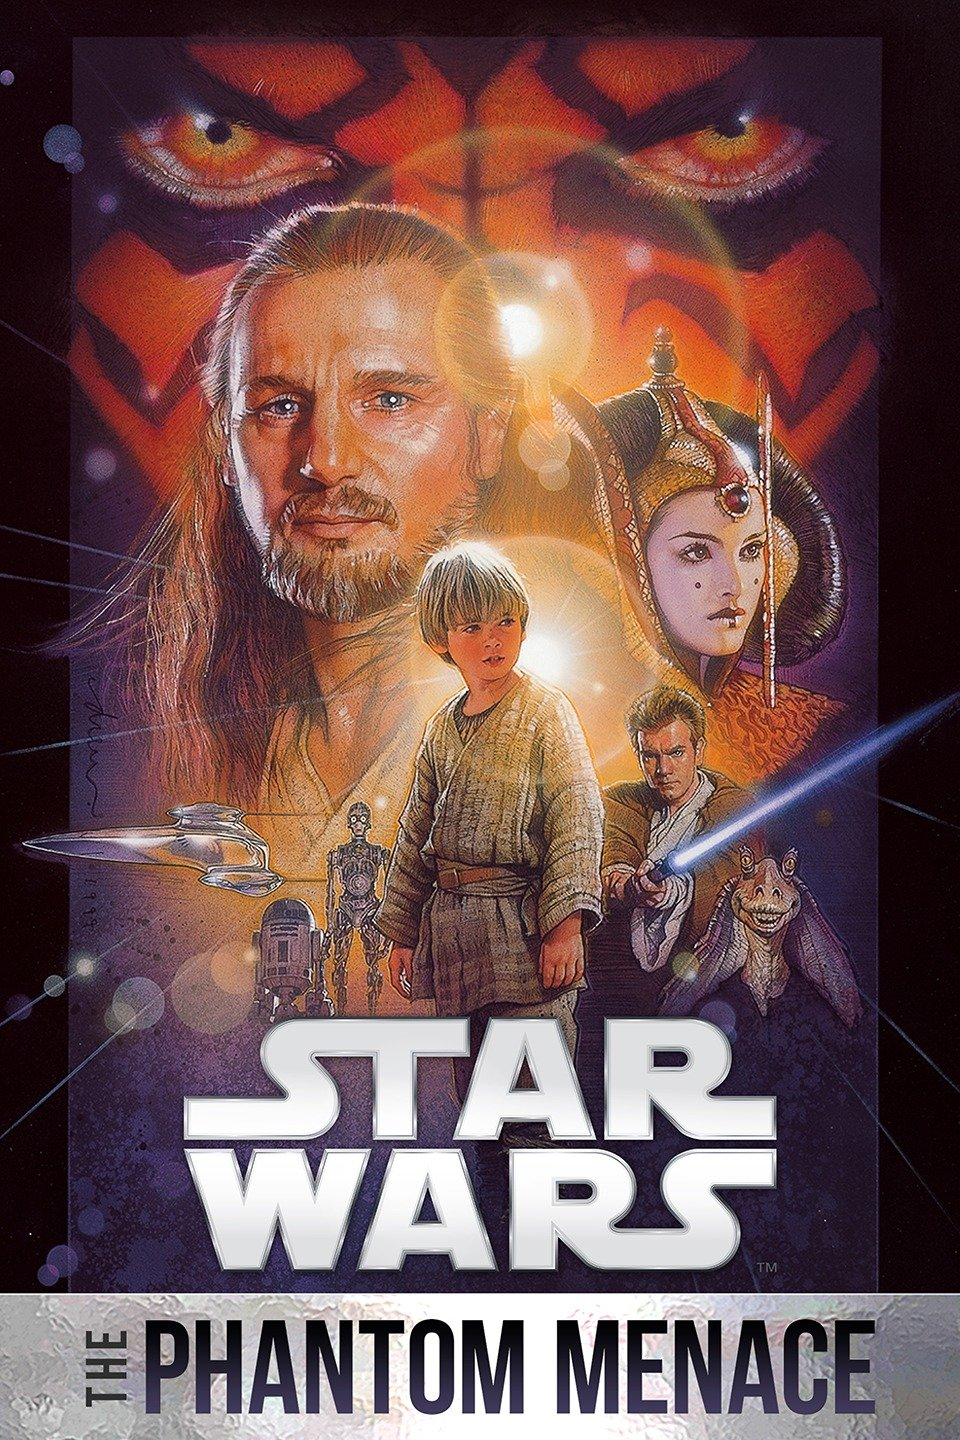 Star Wars: Episode I – The Phantom Menace 1999